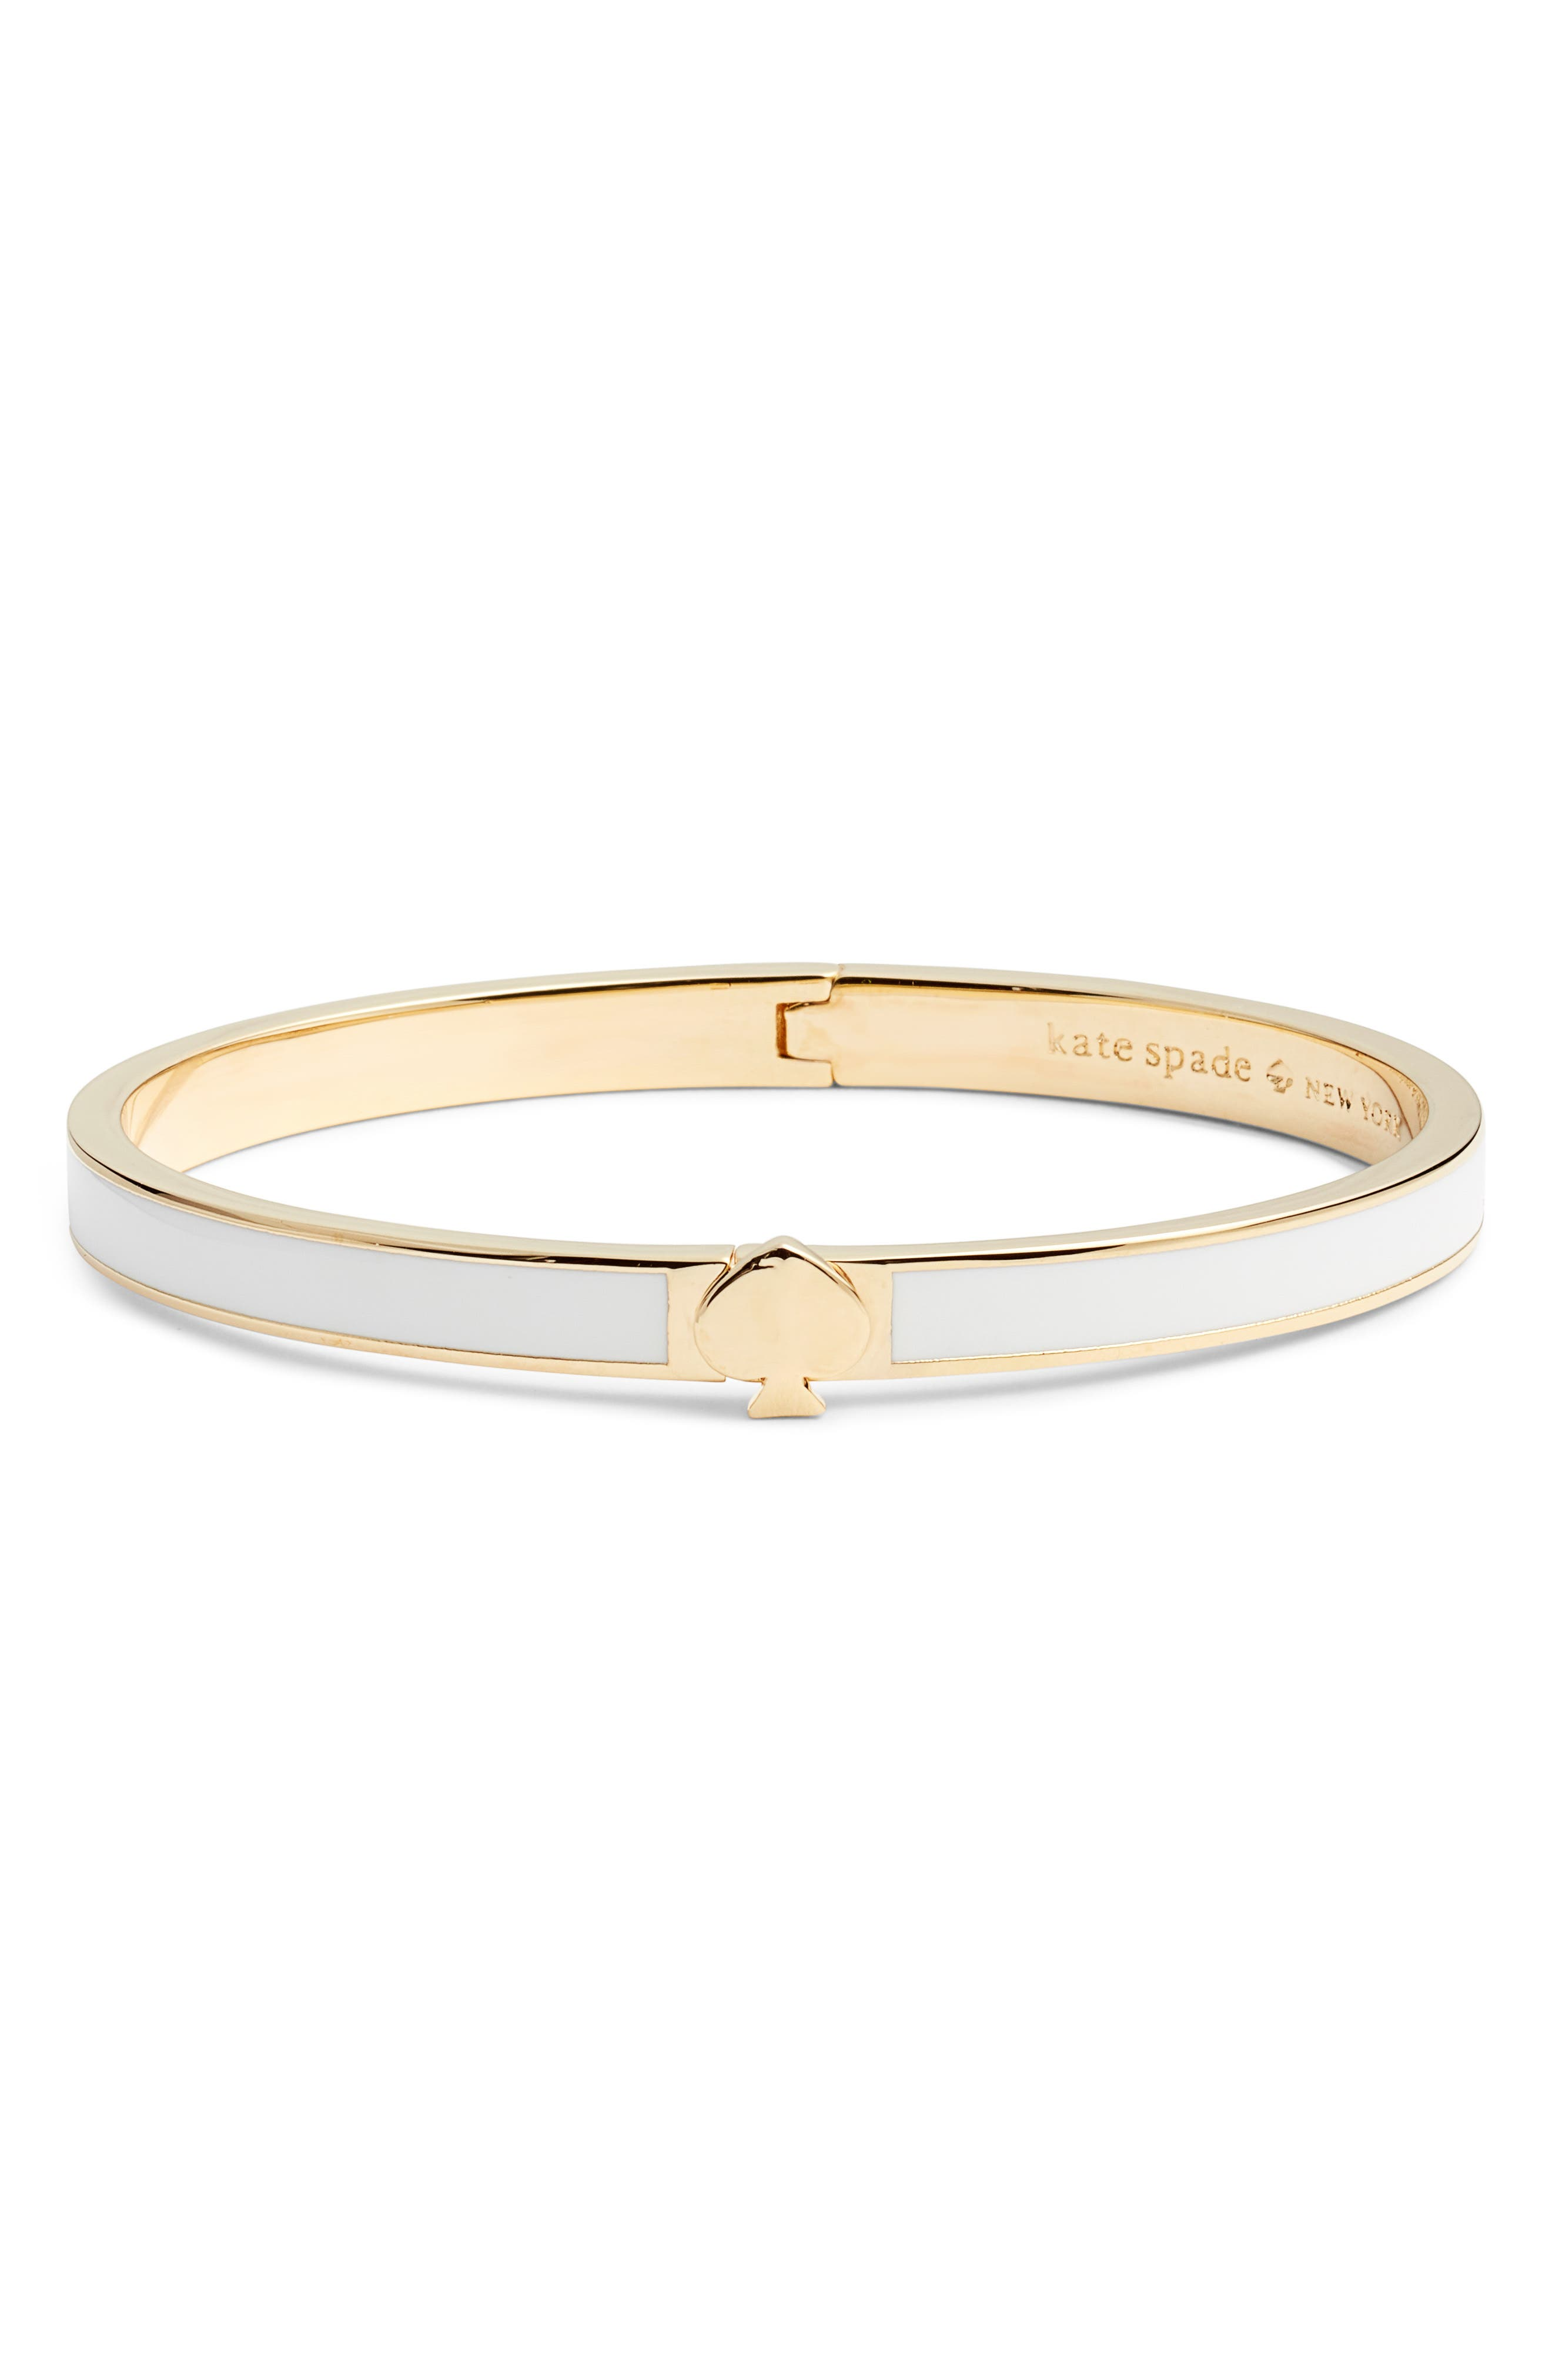 A gleaming spade adds a pretty finishing touch to this slim, enameled bangle. Style Name: Kate Spade New York Enamel Spade Bangle. Style Number: 5761041. Available in stores.